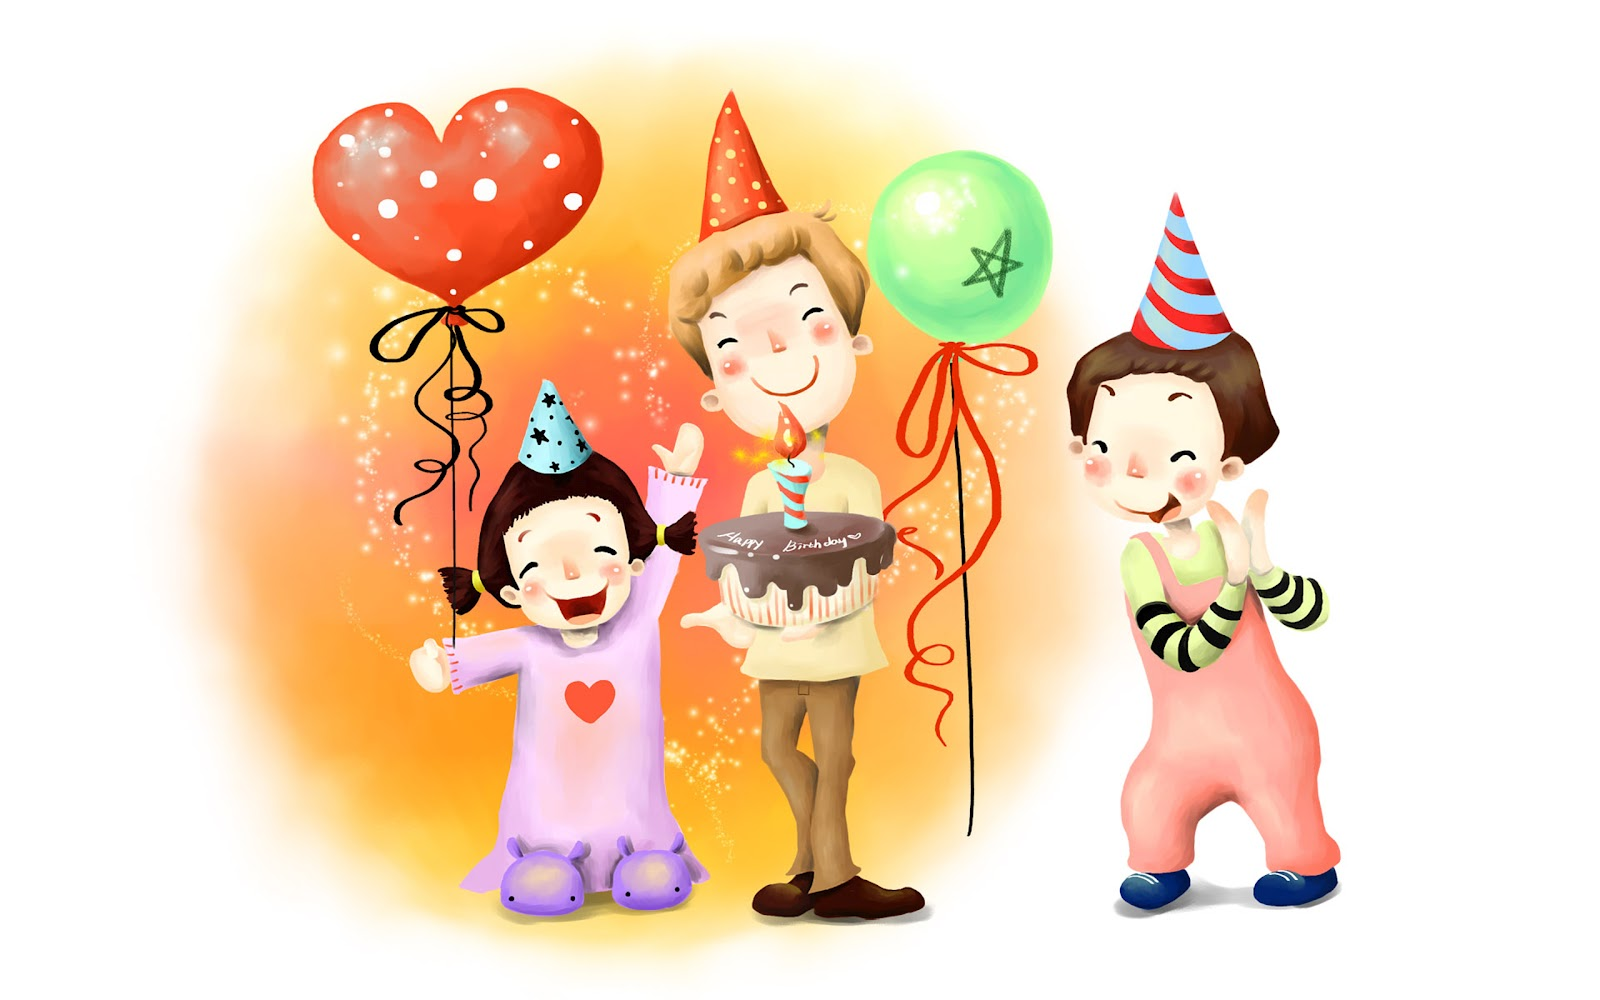 http://3.bp.blogspot.com/-H1UjrDlpIvA/T9zgTYBmIvI/AAAAAAAACUc/ZYtOFpPoI9w/s1600/Happy_Birthday_Cartoon_Wallpaper_freecomputerdesktopwallpaper_2560.jpg